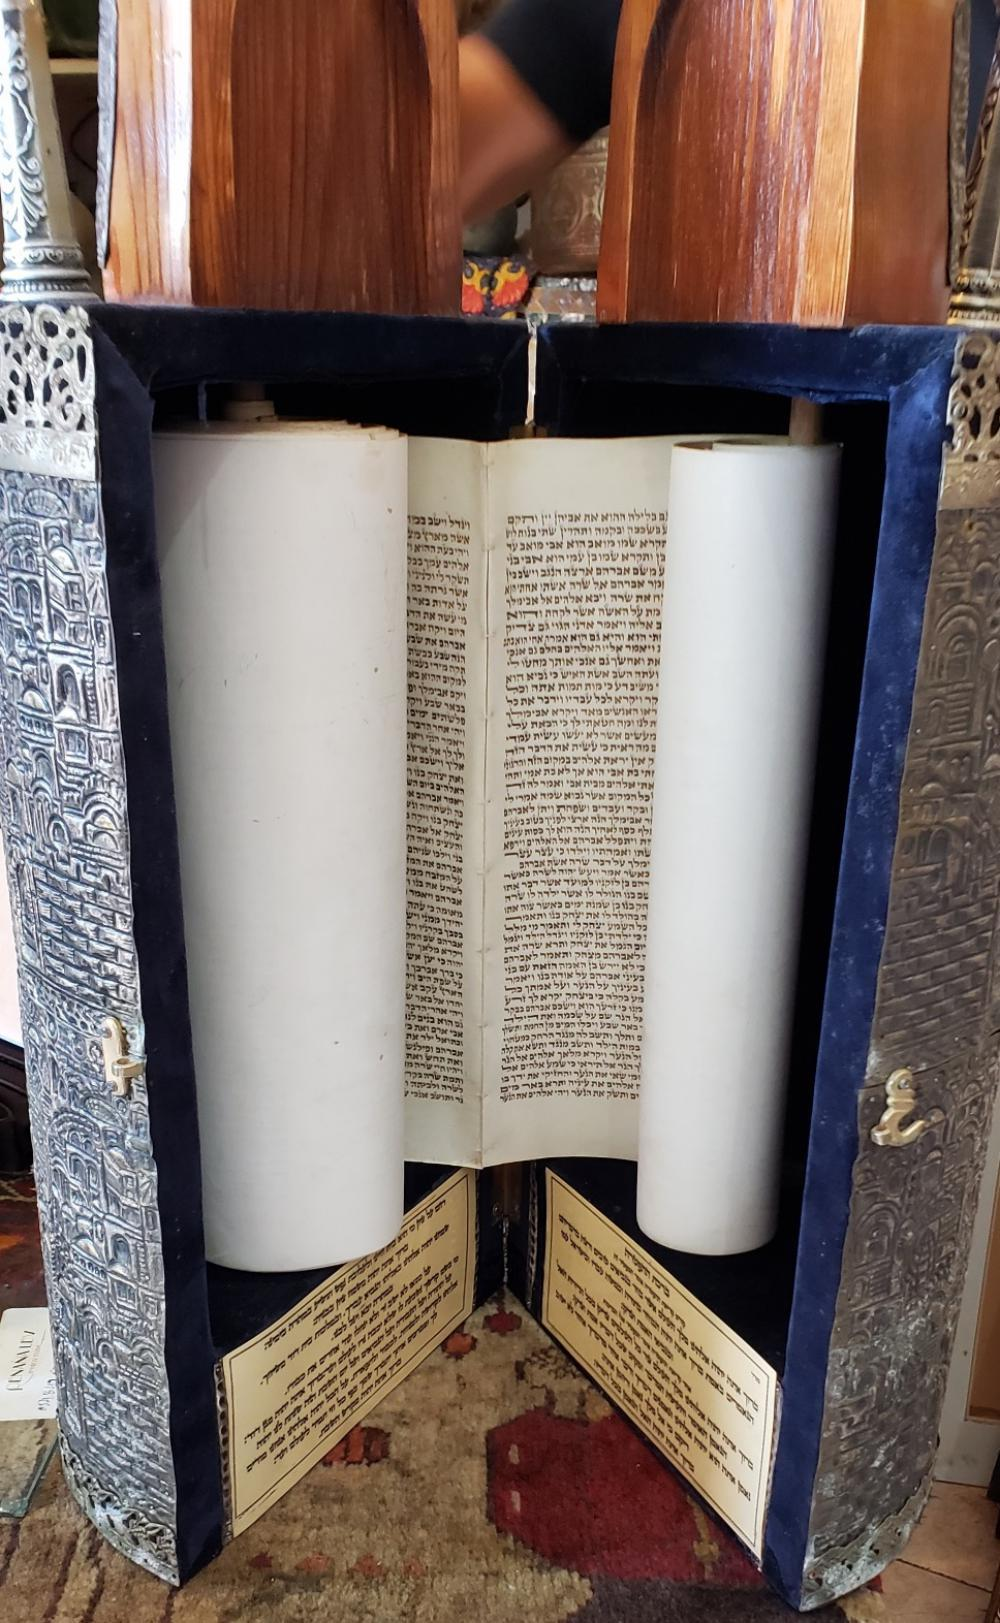 Lot 48: Judaica, Sefer Torah written by hand on parchment, includes a case Jerusalem 1950's